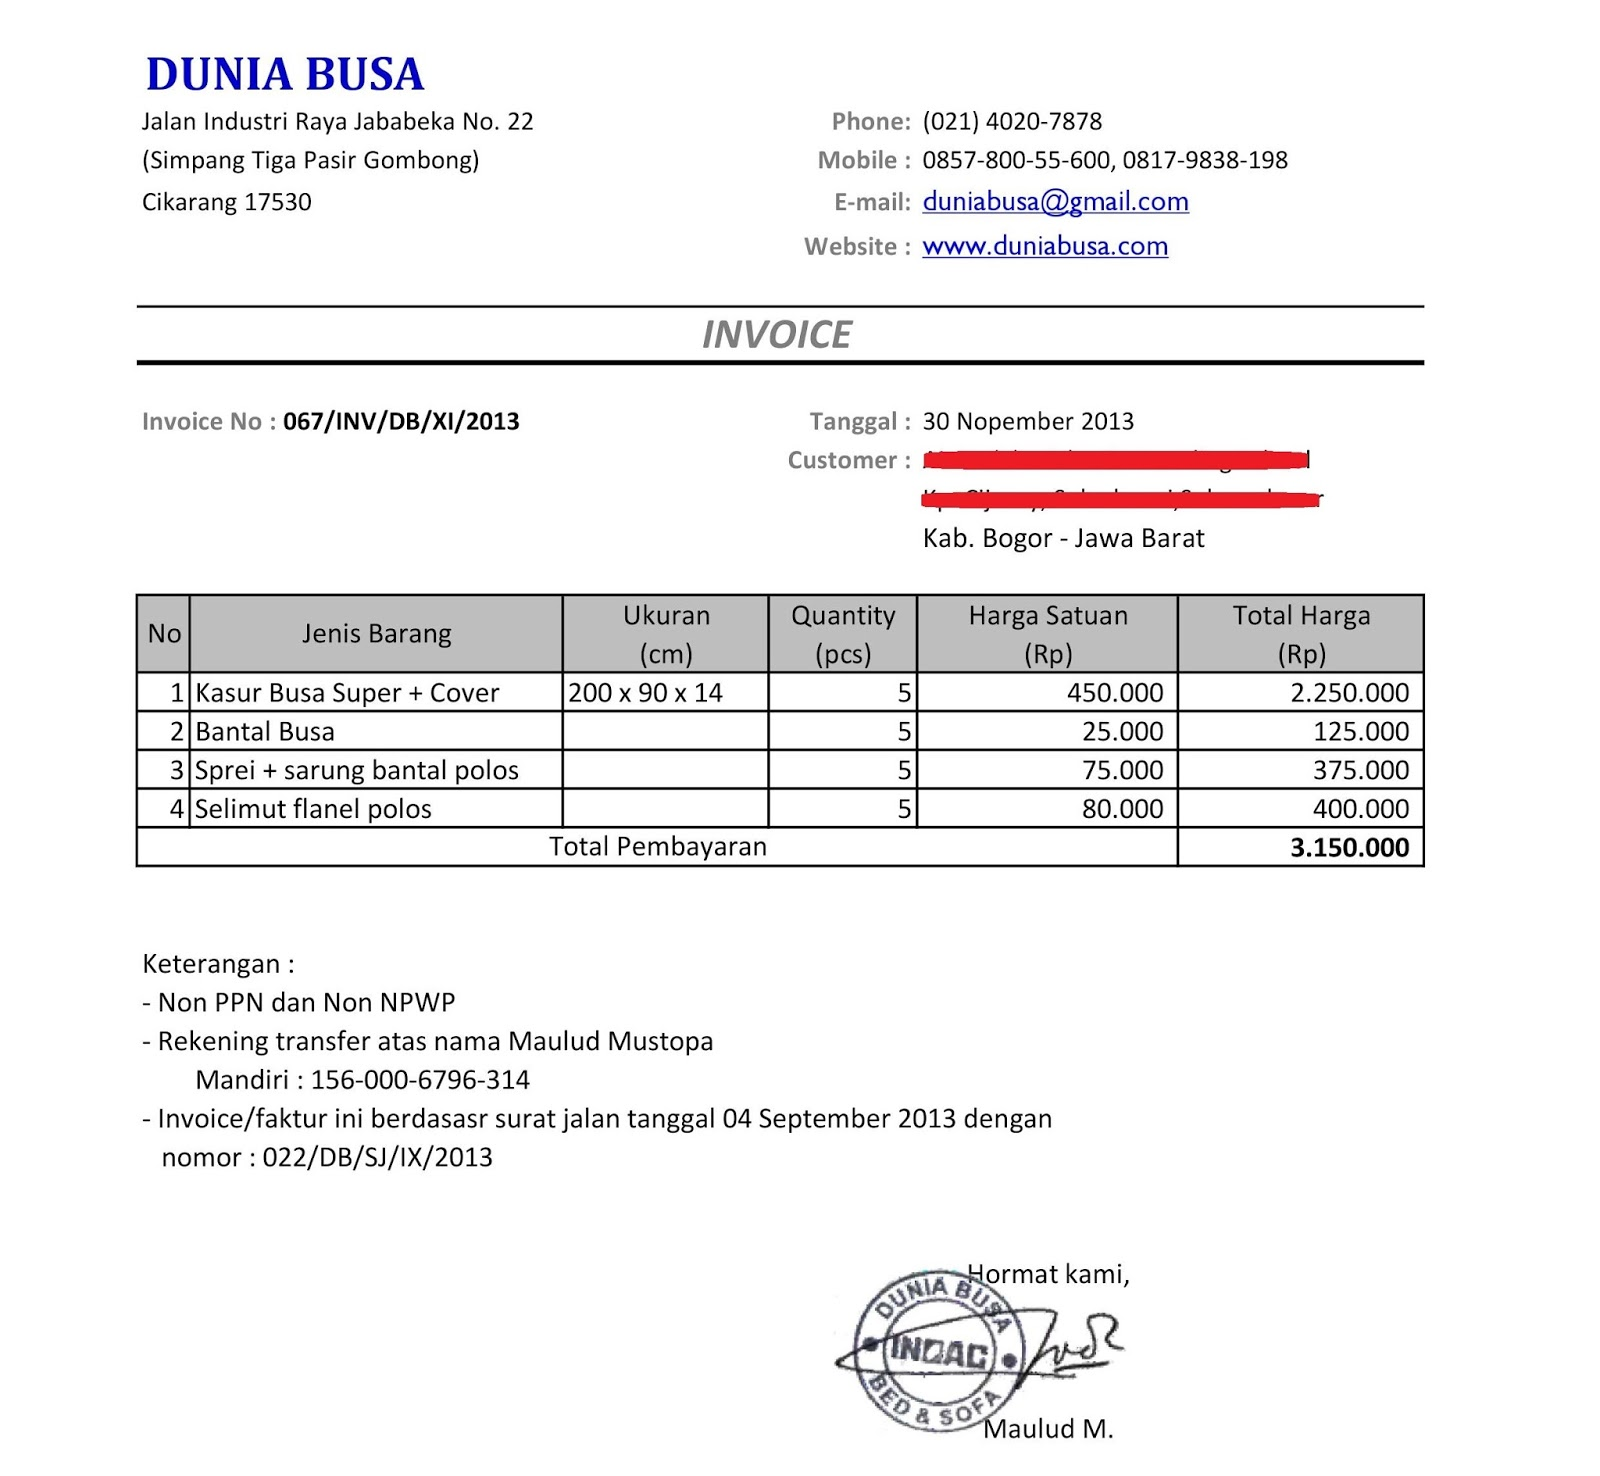 Usdgus  Terrific Free Invoice Online  Create Invoice Online  Invoice Template  With Remarkable Contoh Format Invoice Atau Surat Tagihan  Brankas Arsip  Free Invoice Online With Beautiful Simple Invoice Management System Also Reconciliation Of Invoices In Addition Sample Invoice For Freelance Work And Australia Tax Invoice As Well As Handheld Invoice Printer Additionally Access Invoice From Sklepco With Usdgus  Remarkable Free Invoice Online  Create Invoice Online  Invoice Template  With Beautiful Contoh Format Invoice Atau Surat Tagihan  Brankas Arsip  Free Invoice Online And Terrific Simple Invoice Management System Also Reconciliation Of Invoices In Addition Sample Invoice For Freelance Work From Sklepco